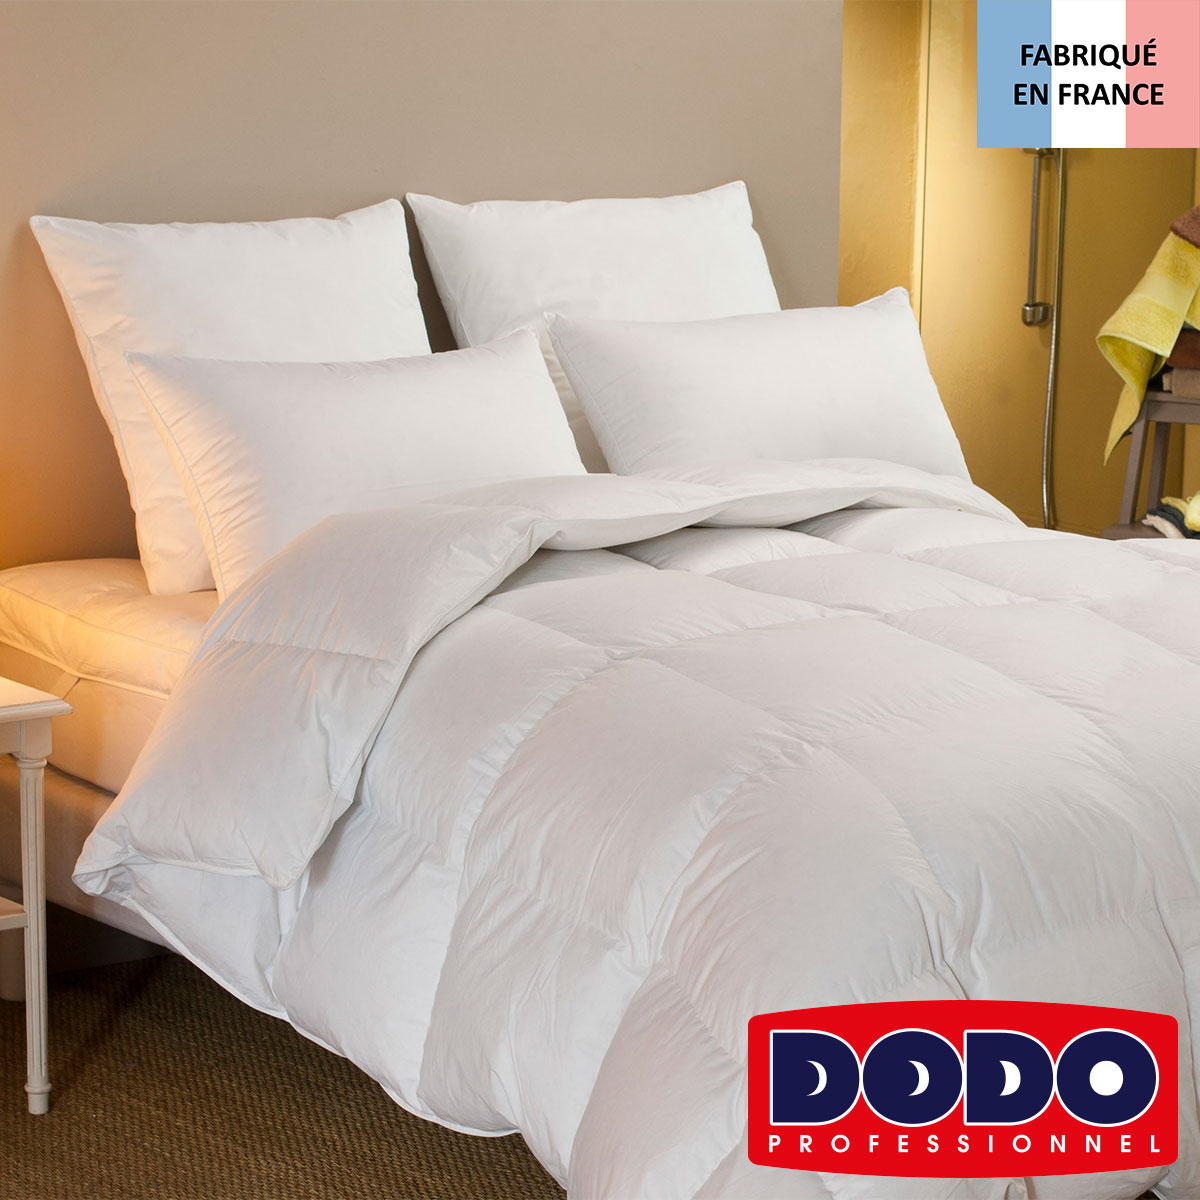 couette naturelle piuma en percale et duvet dodo standard textile. Black Bedroom Furniture Sets. Home Design Ideas